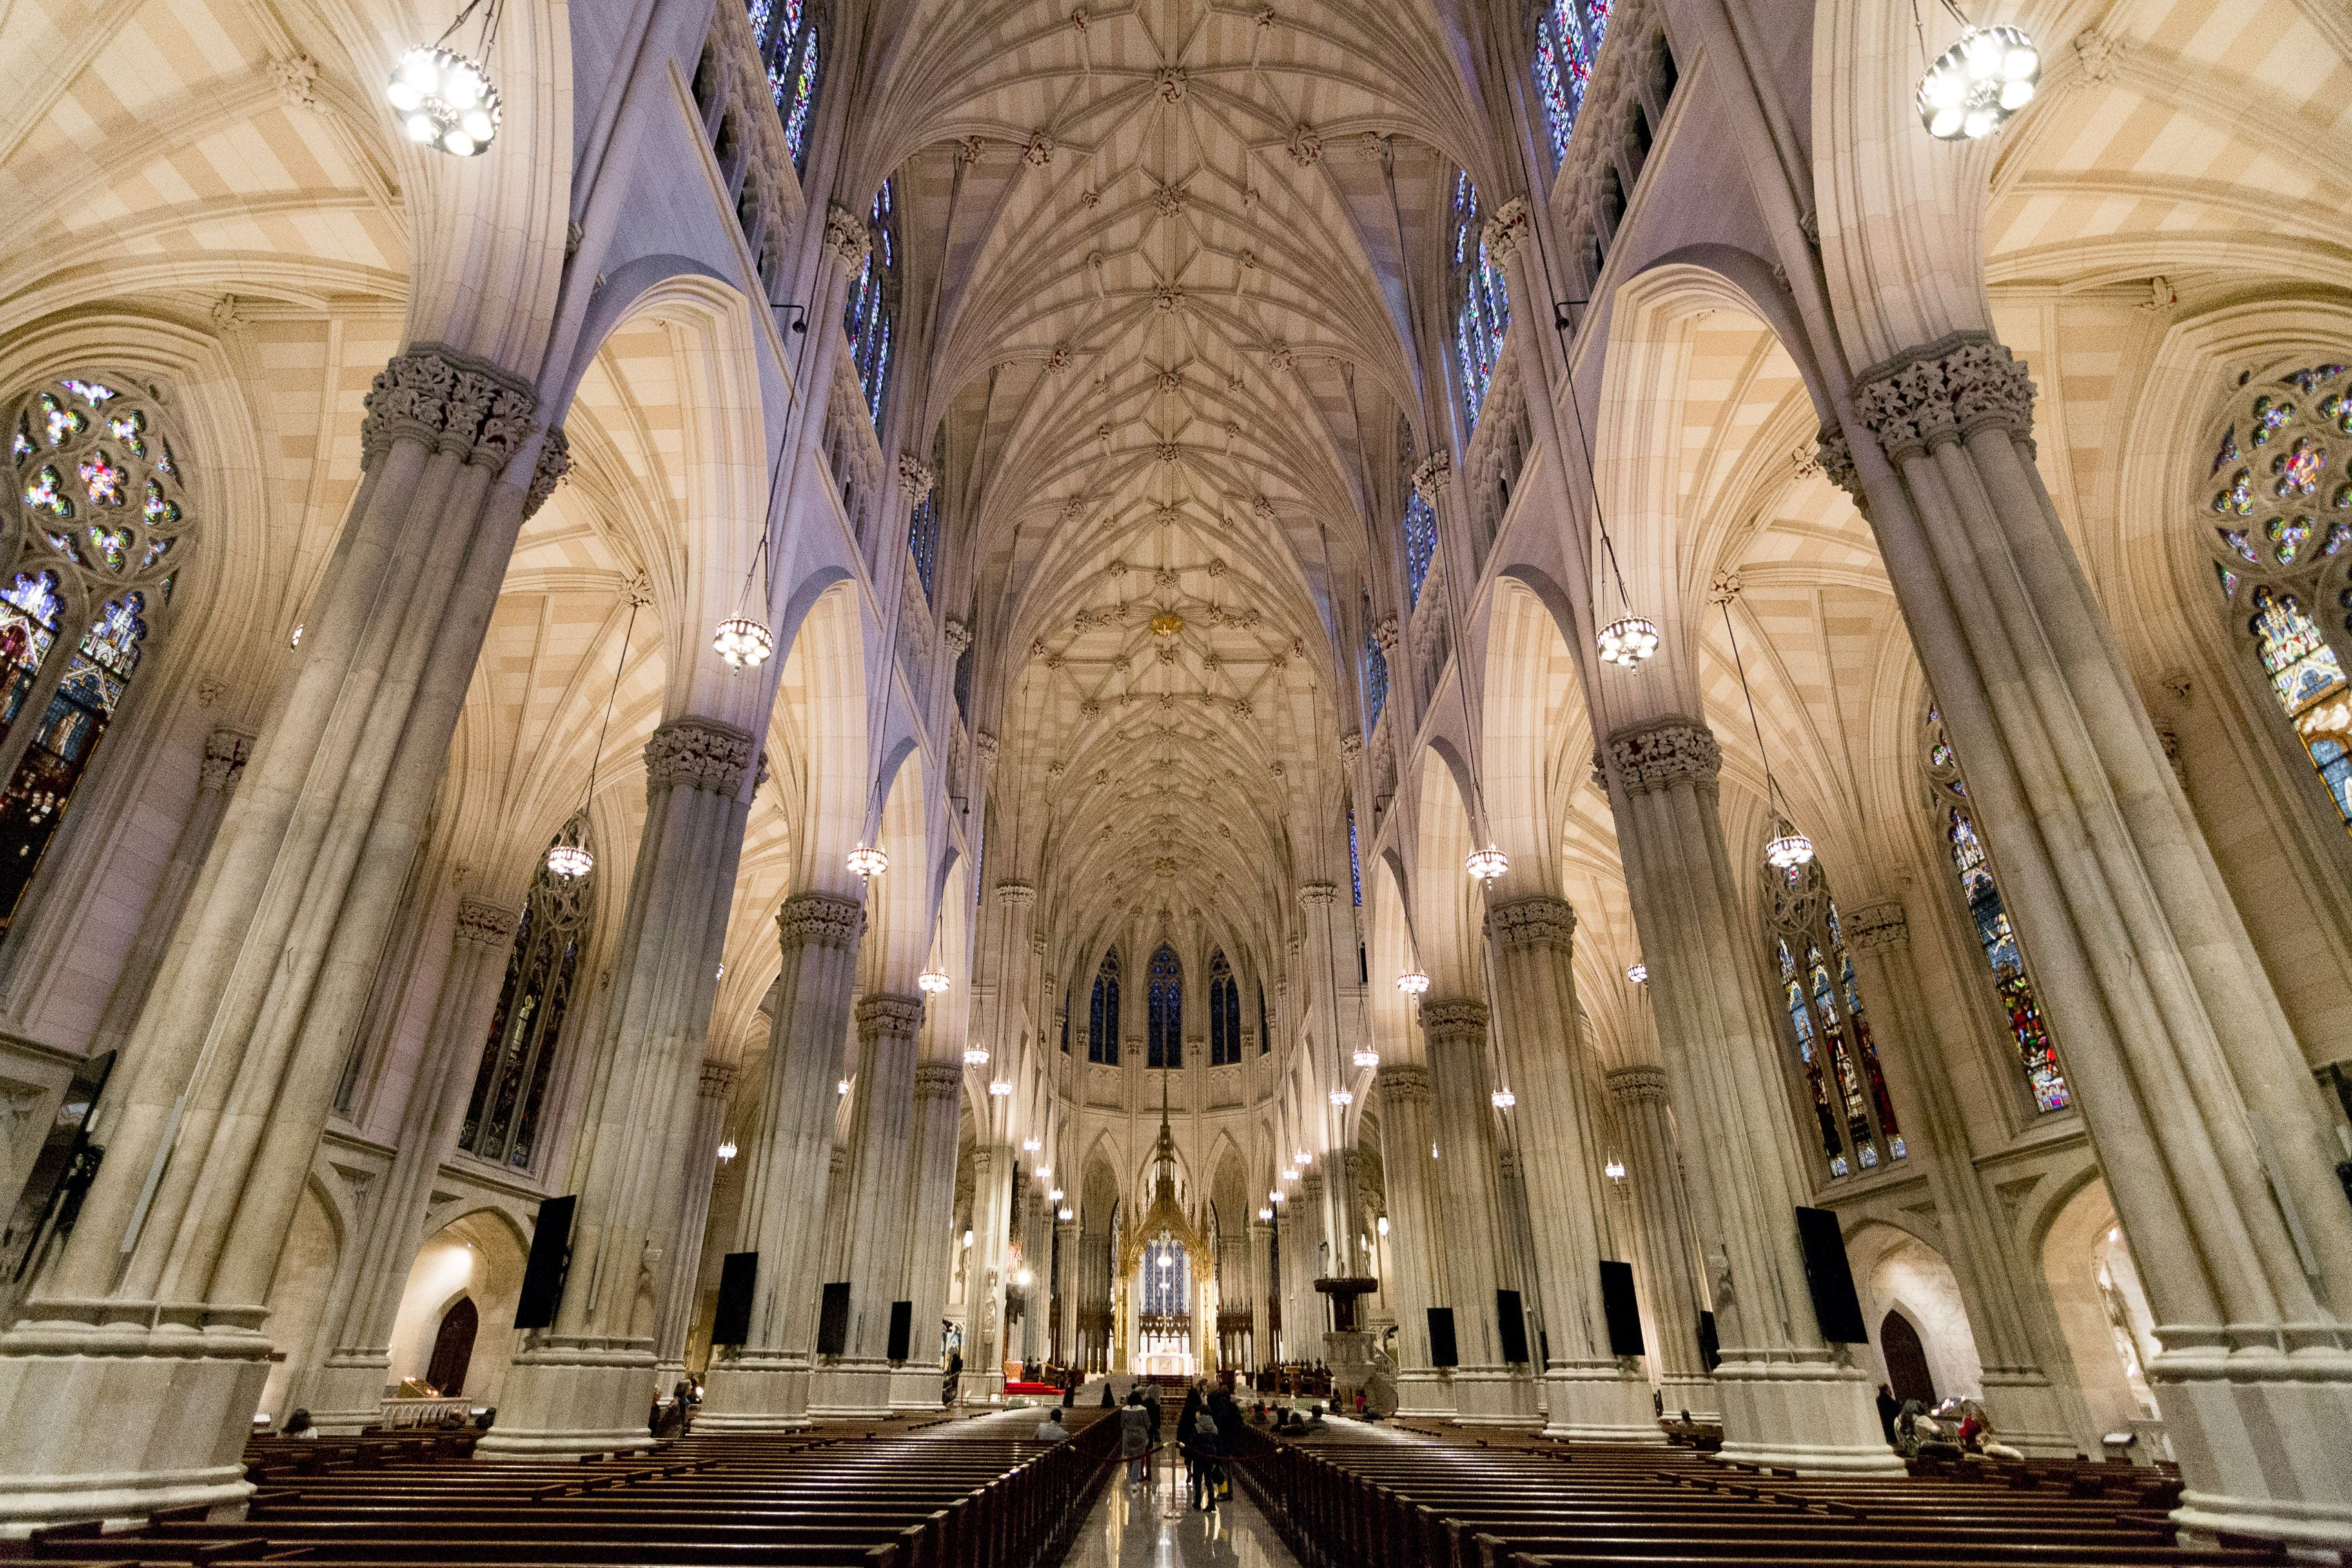 Inside of St. Patricks cathedral